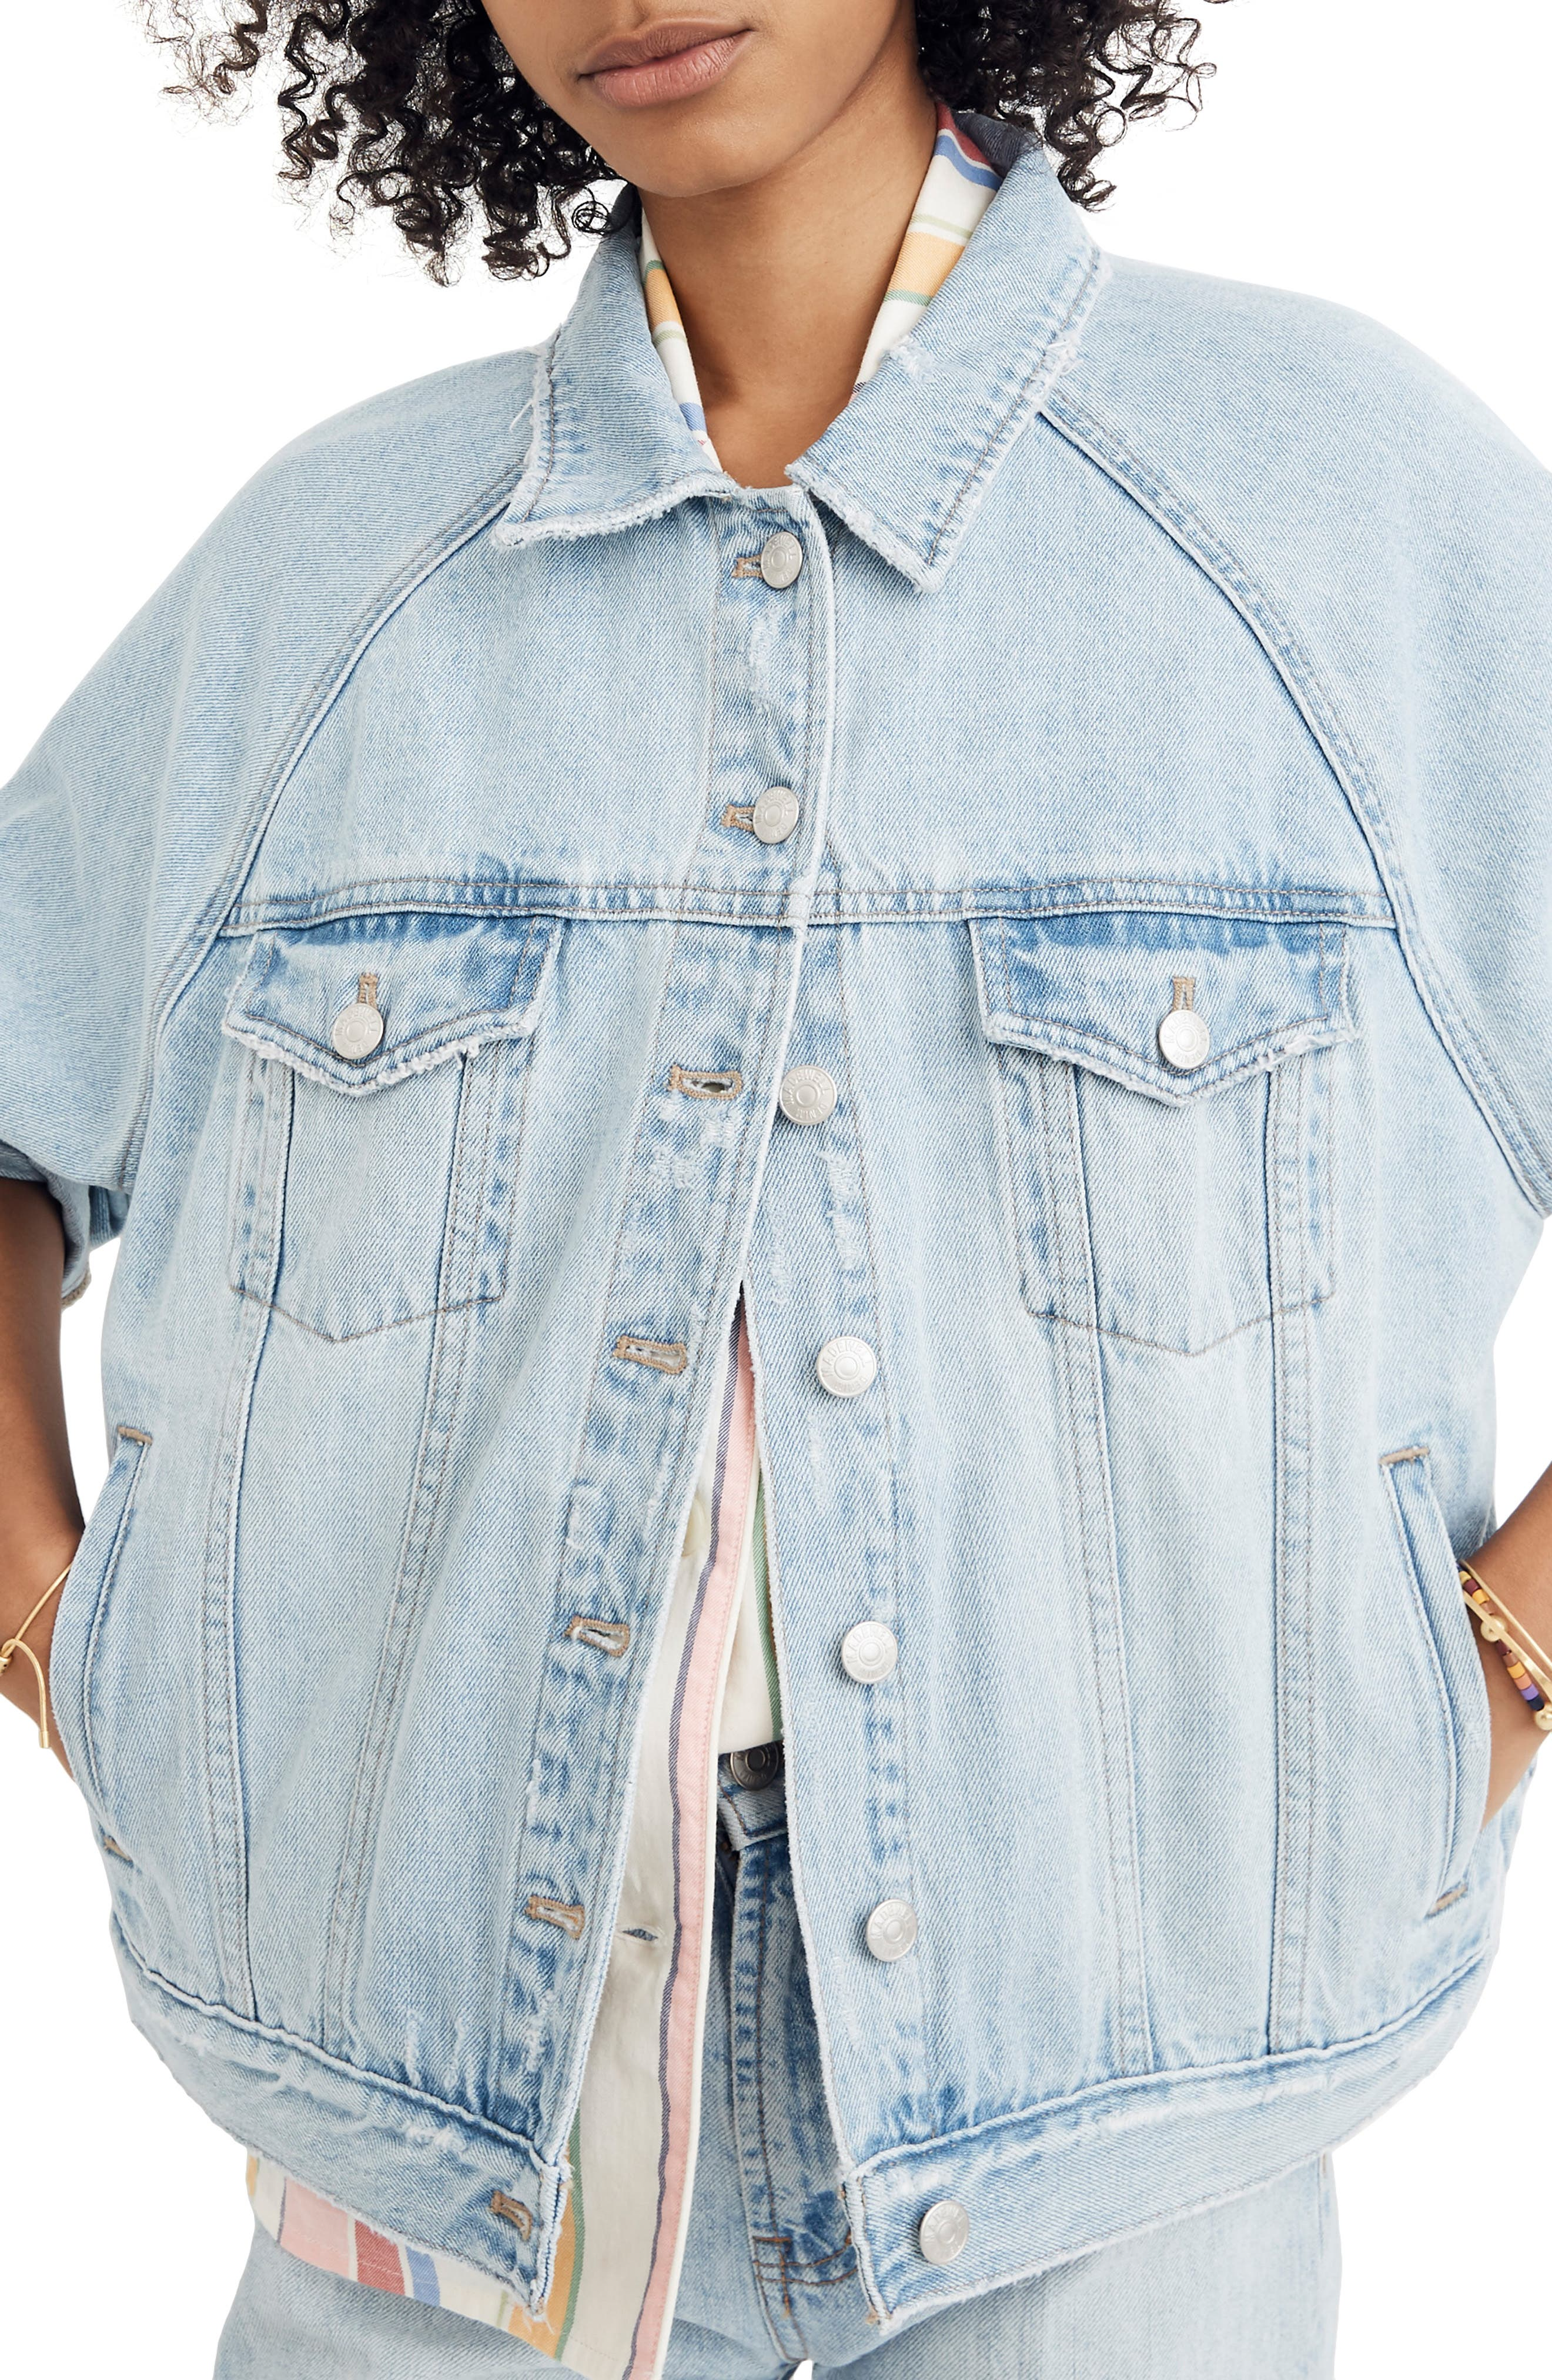 MADEWELL, The Raglan Oversize Jean Jacket, Main thumbnail 1, color, BRISTOL